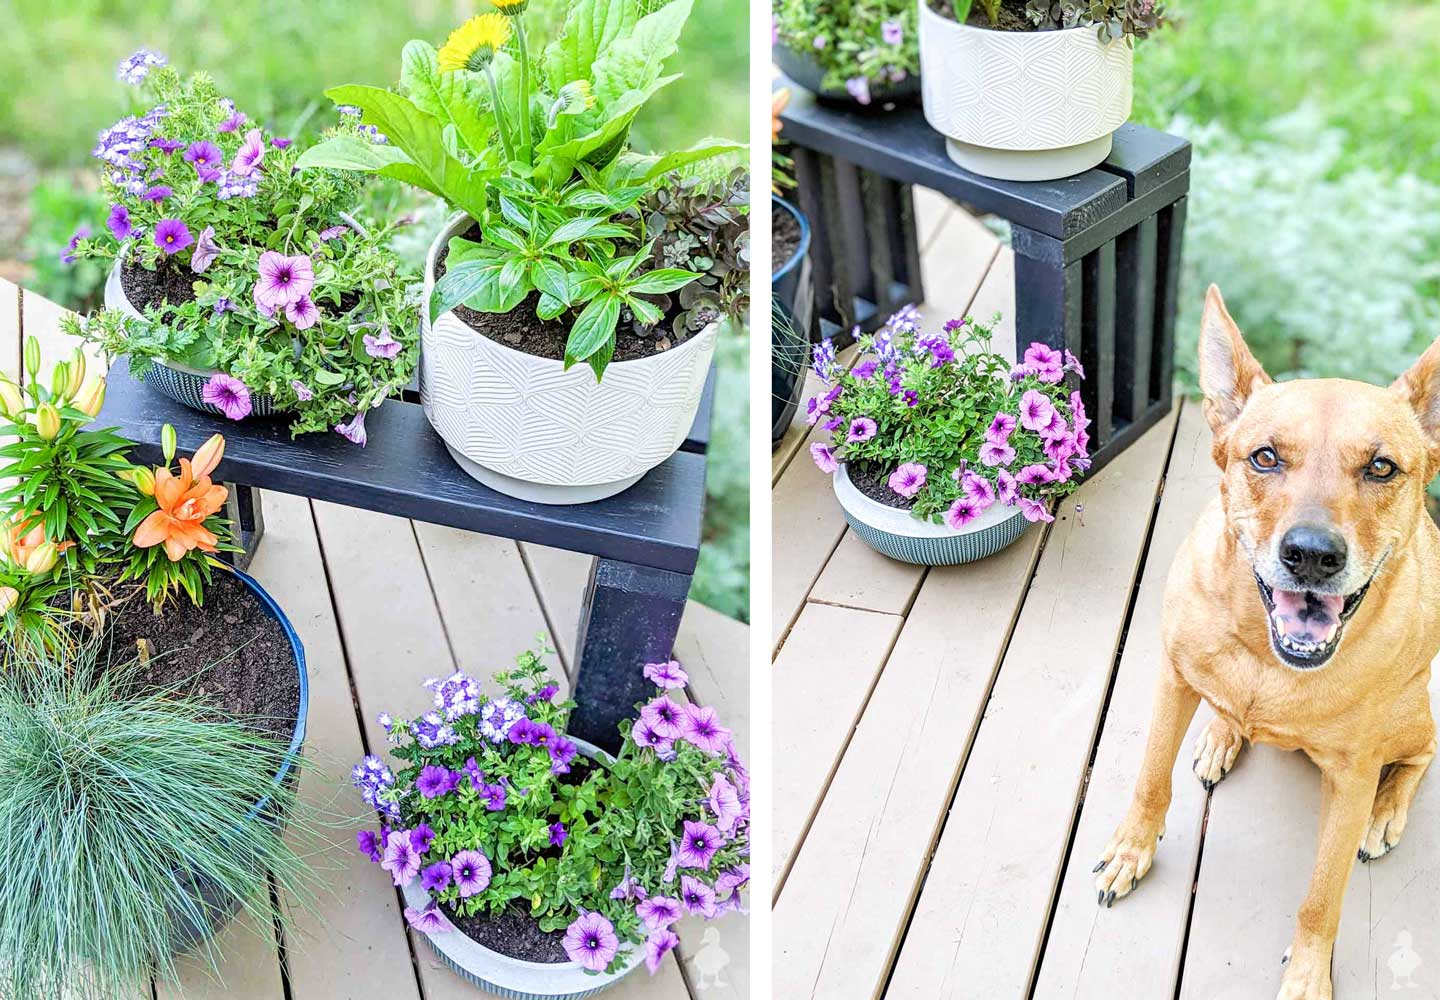 new flowers for the deck with smiling dog Charlie